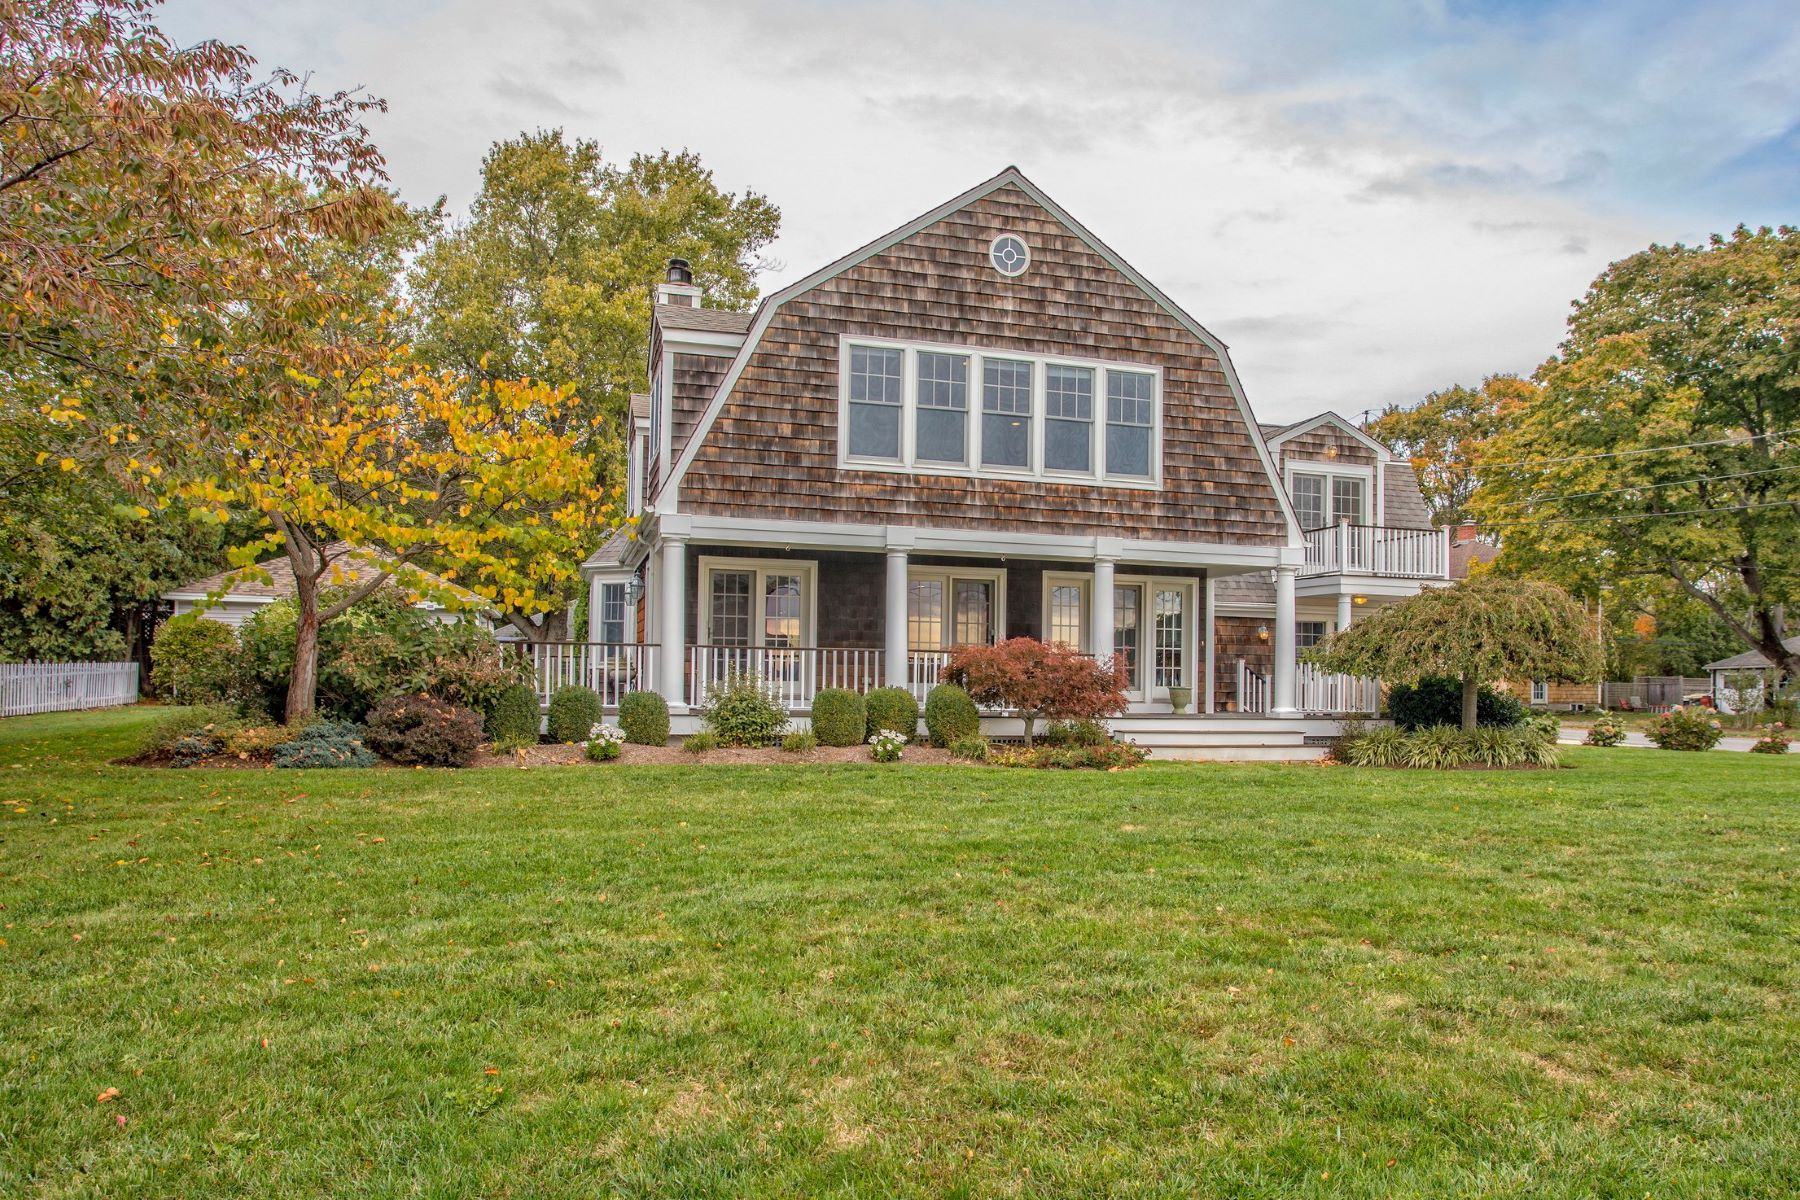 Single Family Home for Sale at Coastal Cottage 2 Bayview Avenue Warren, Rhode Island 02885 United States